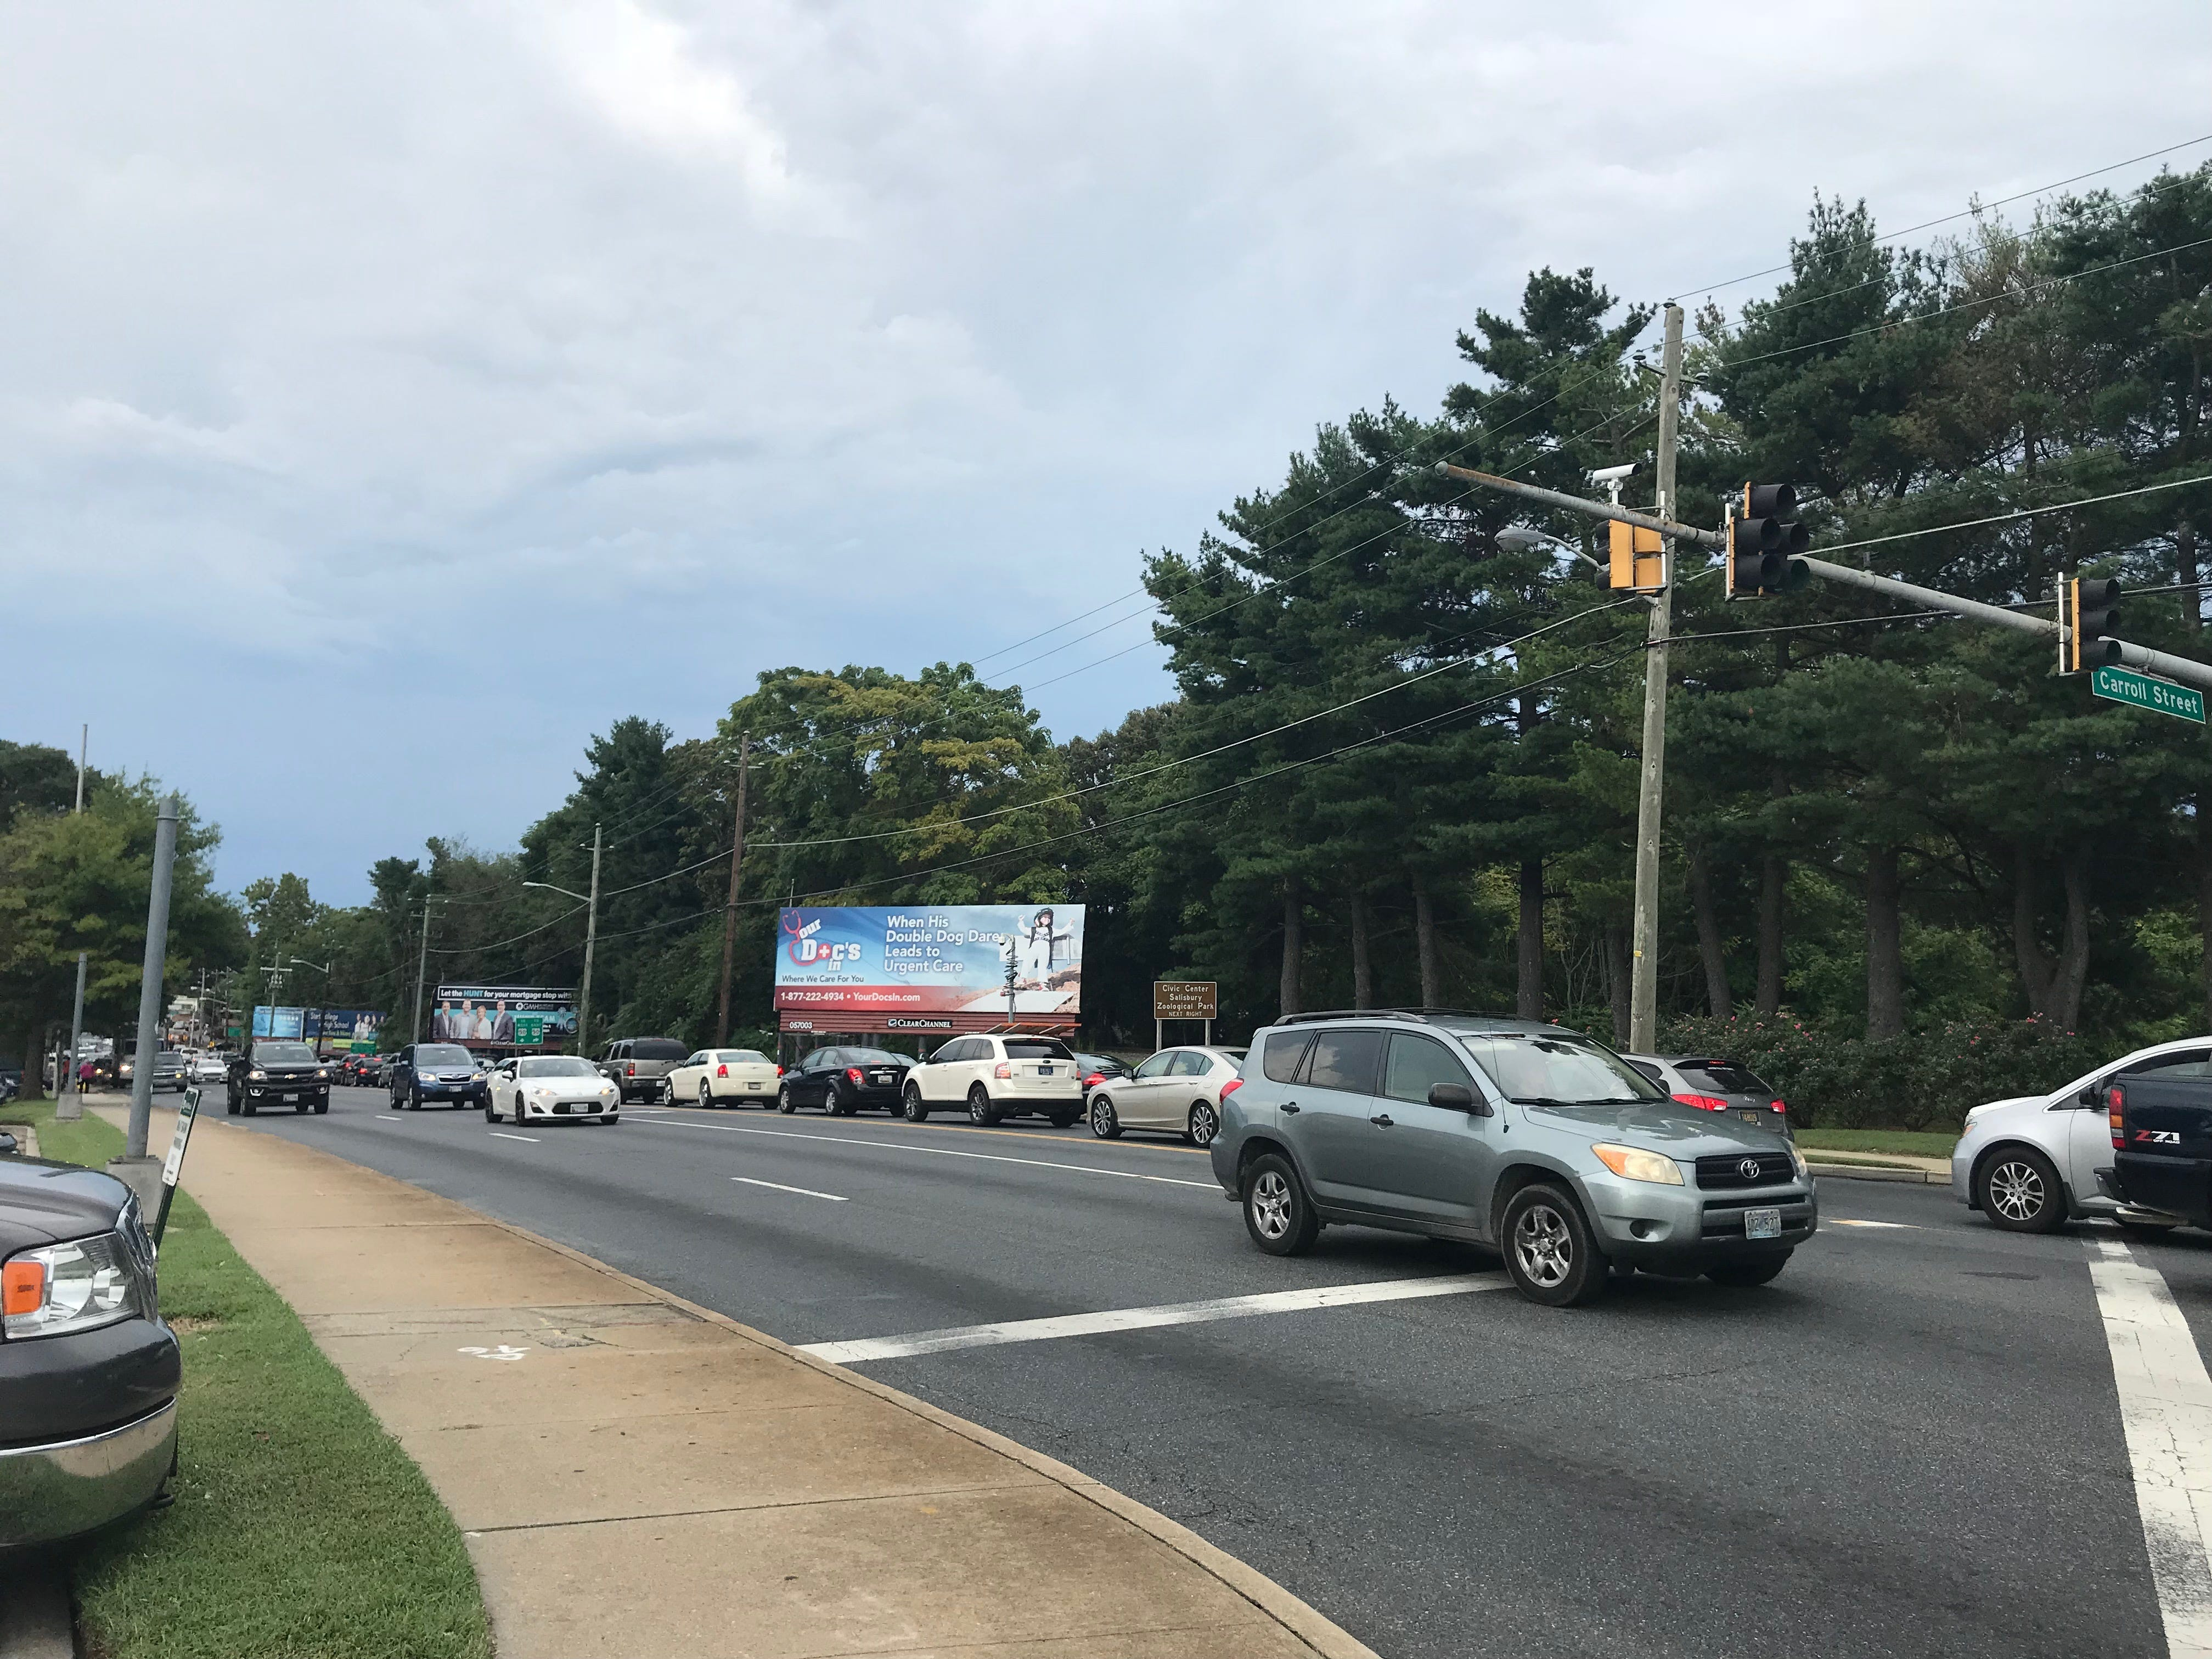 Traffic is heavier than normal near downtown Salisbury as the city wraps up preparations for the National Folk Festival on Friday, Sept. 7, 2018.